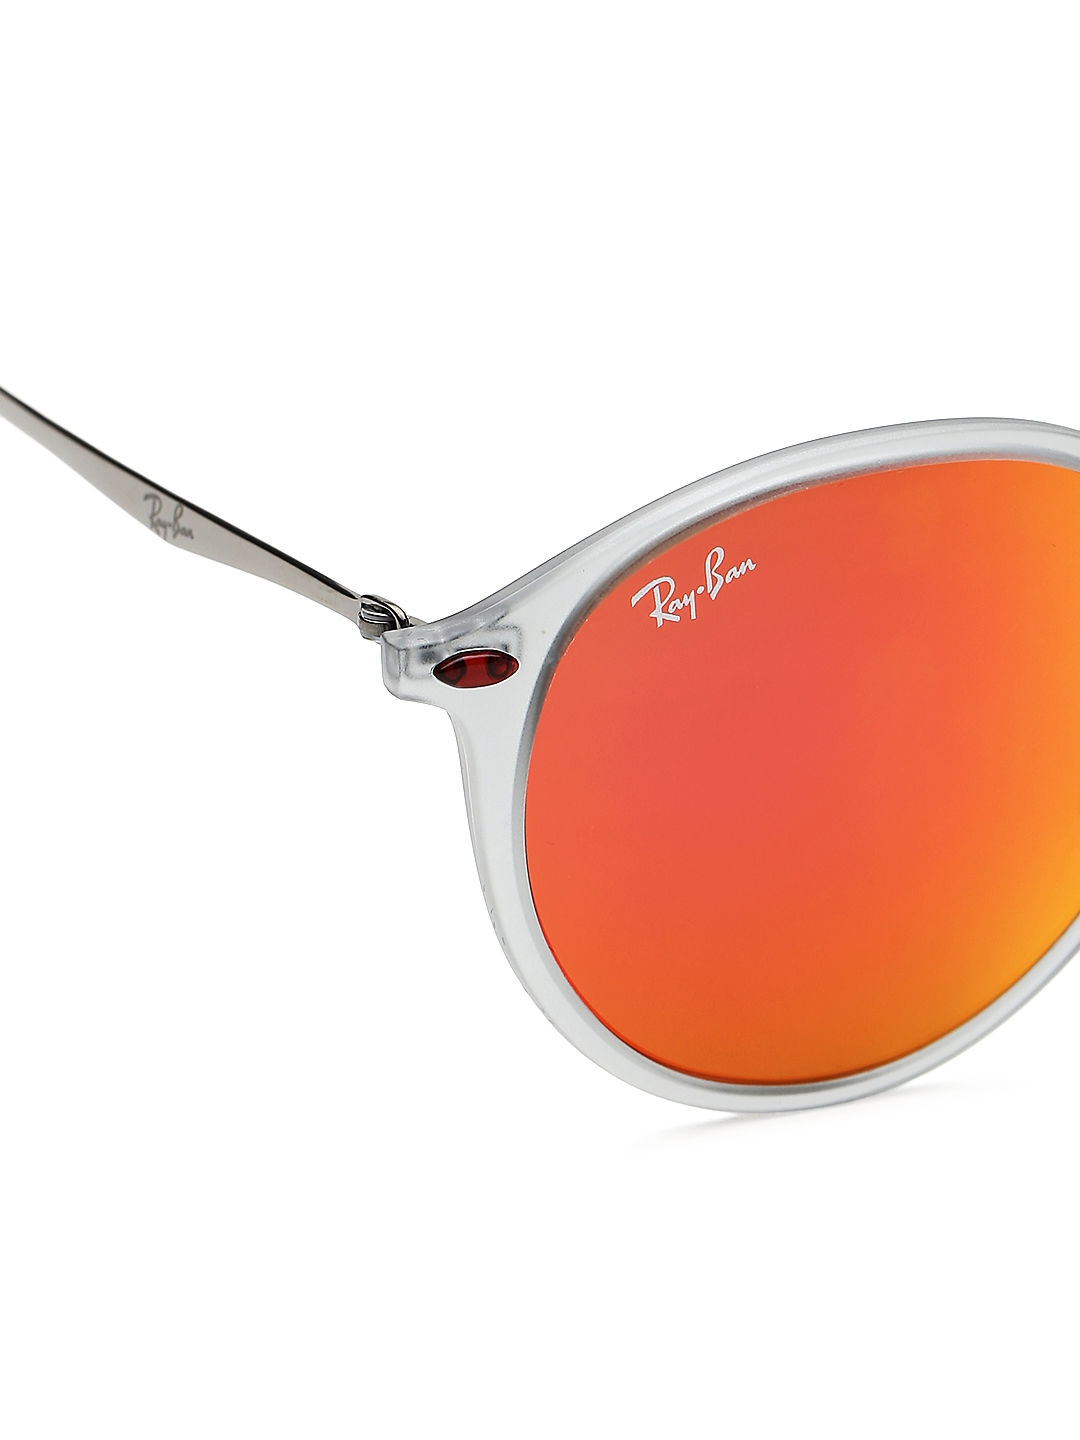 ray ban round sunglasses tumblr